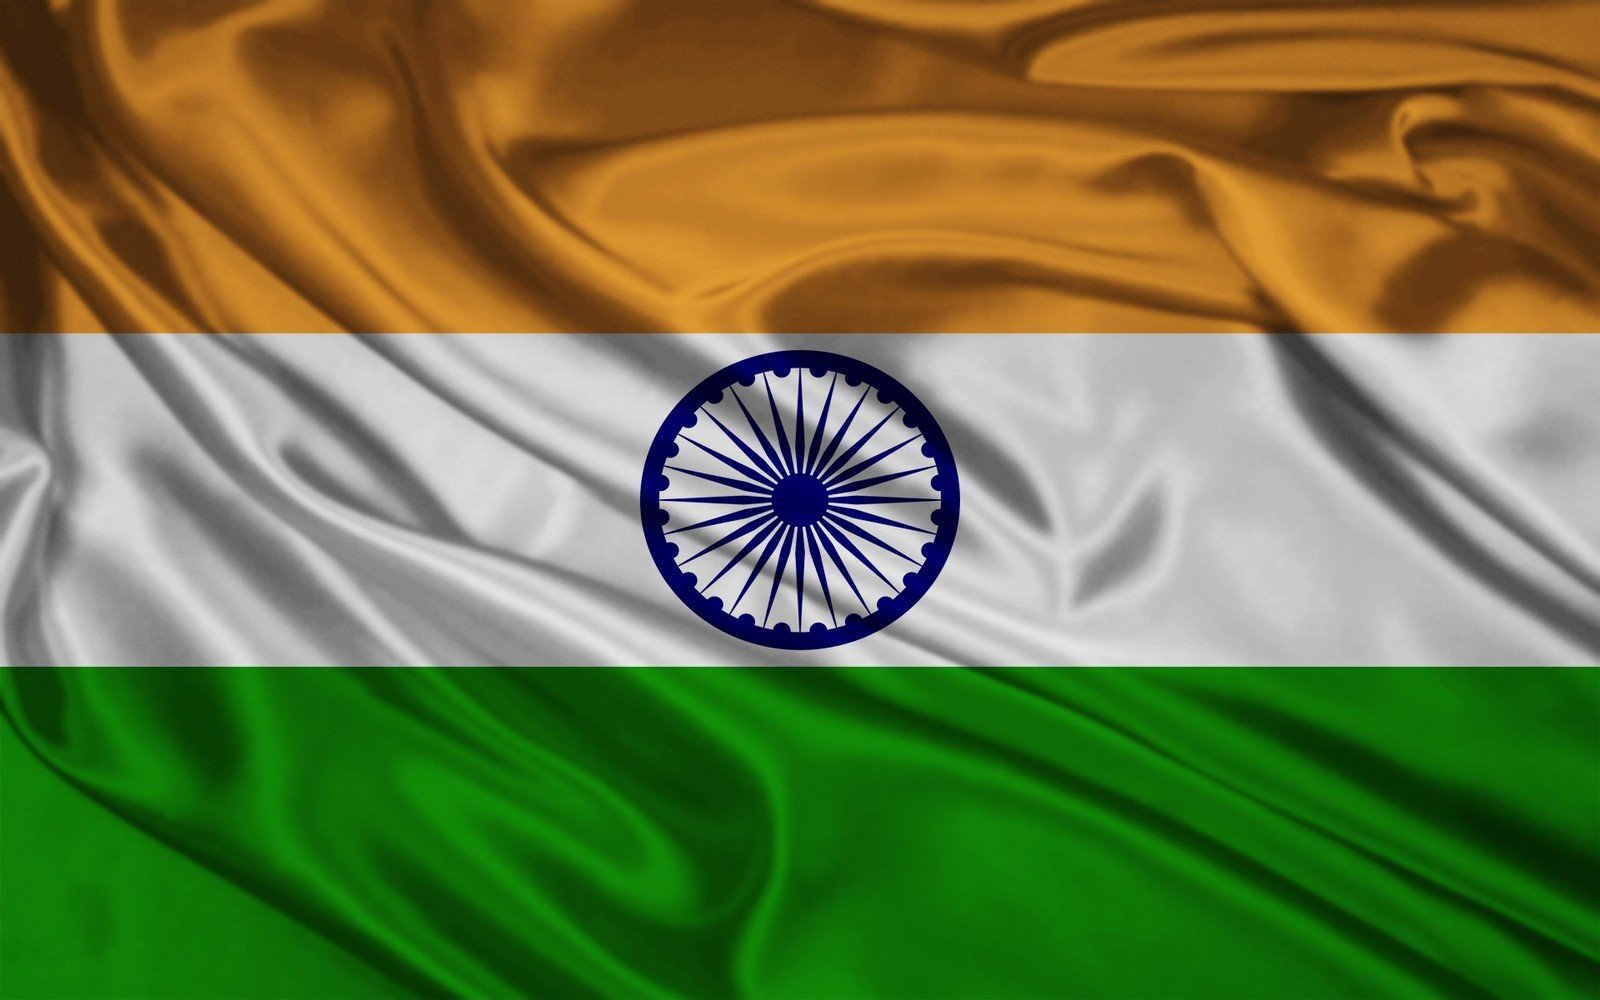 Day India Flag HD Wallpaper Independence Day India Flag HD Wallpapers 1600x1000